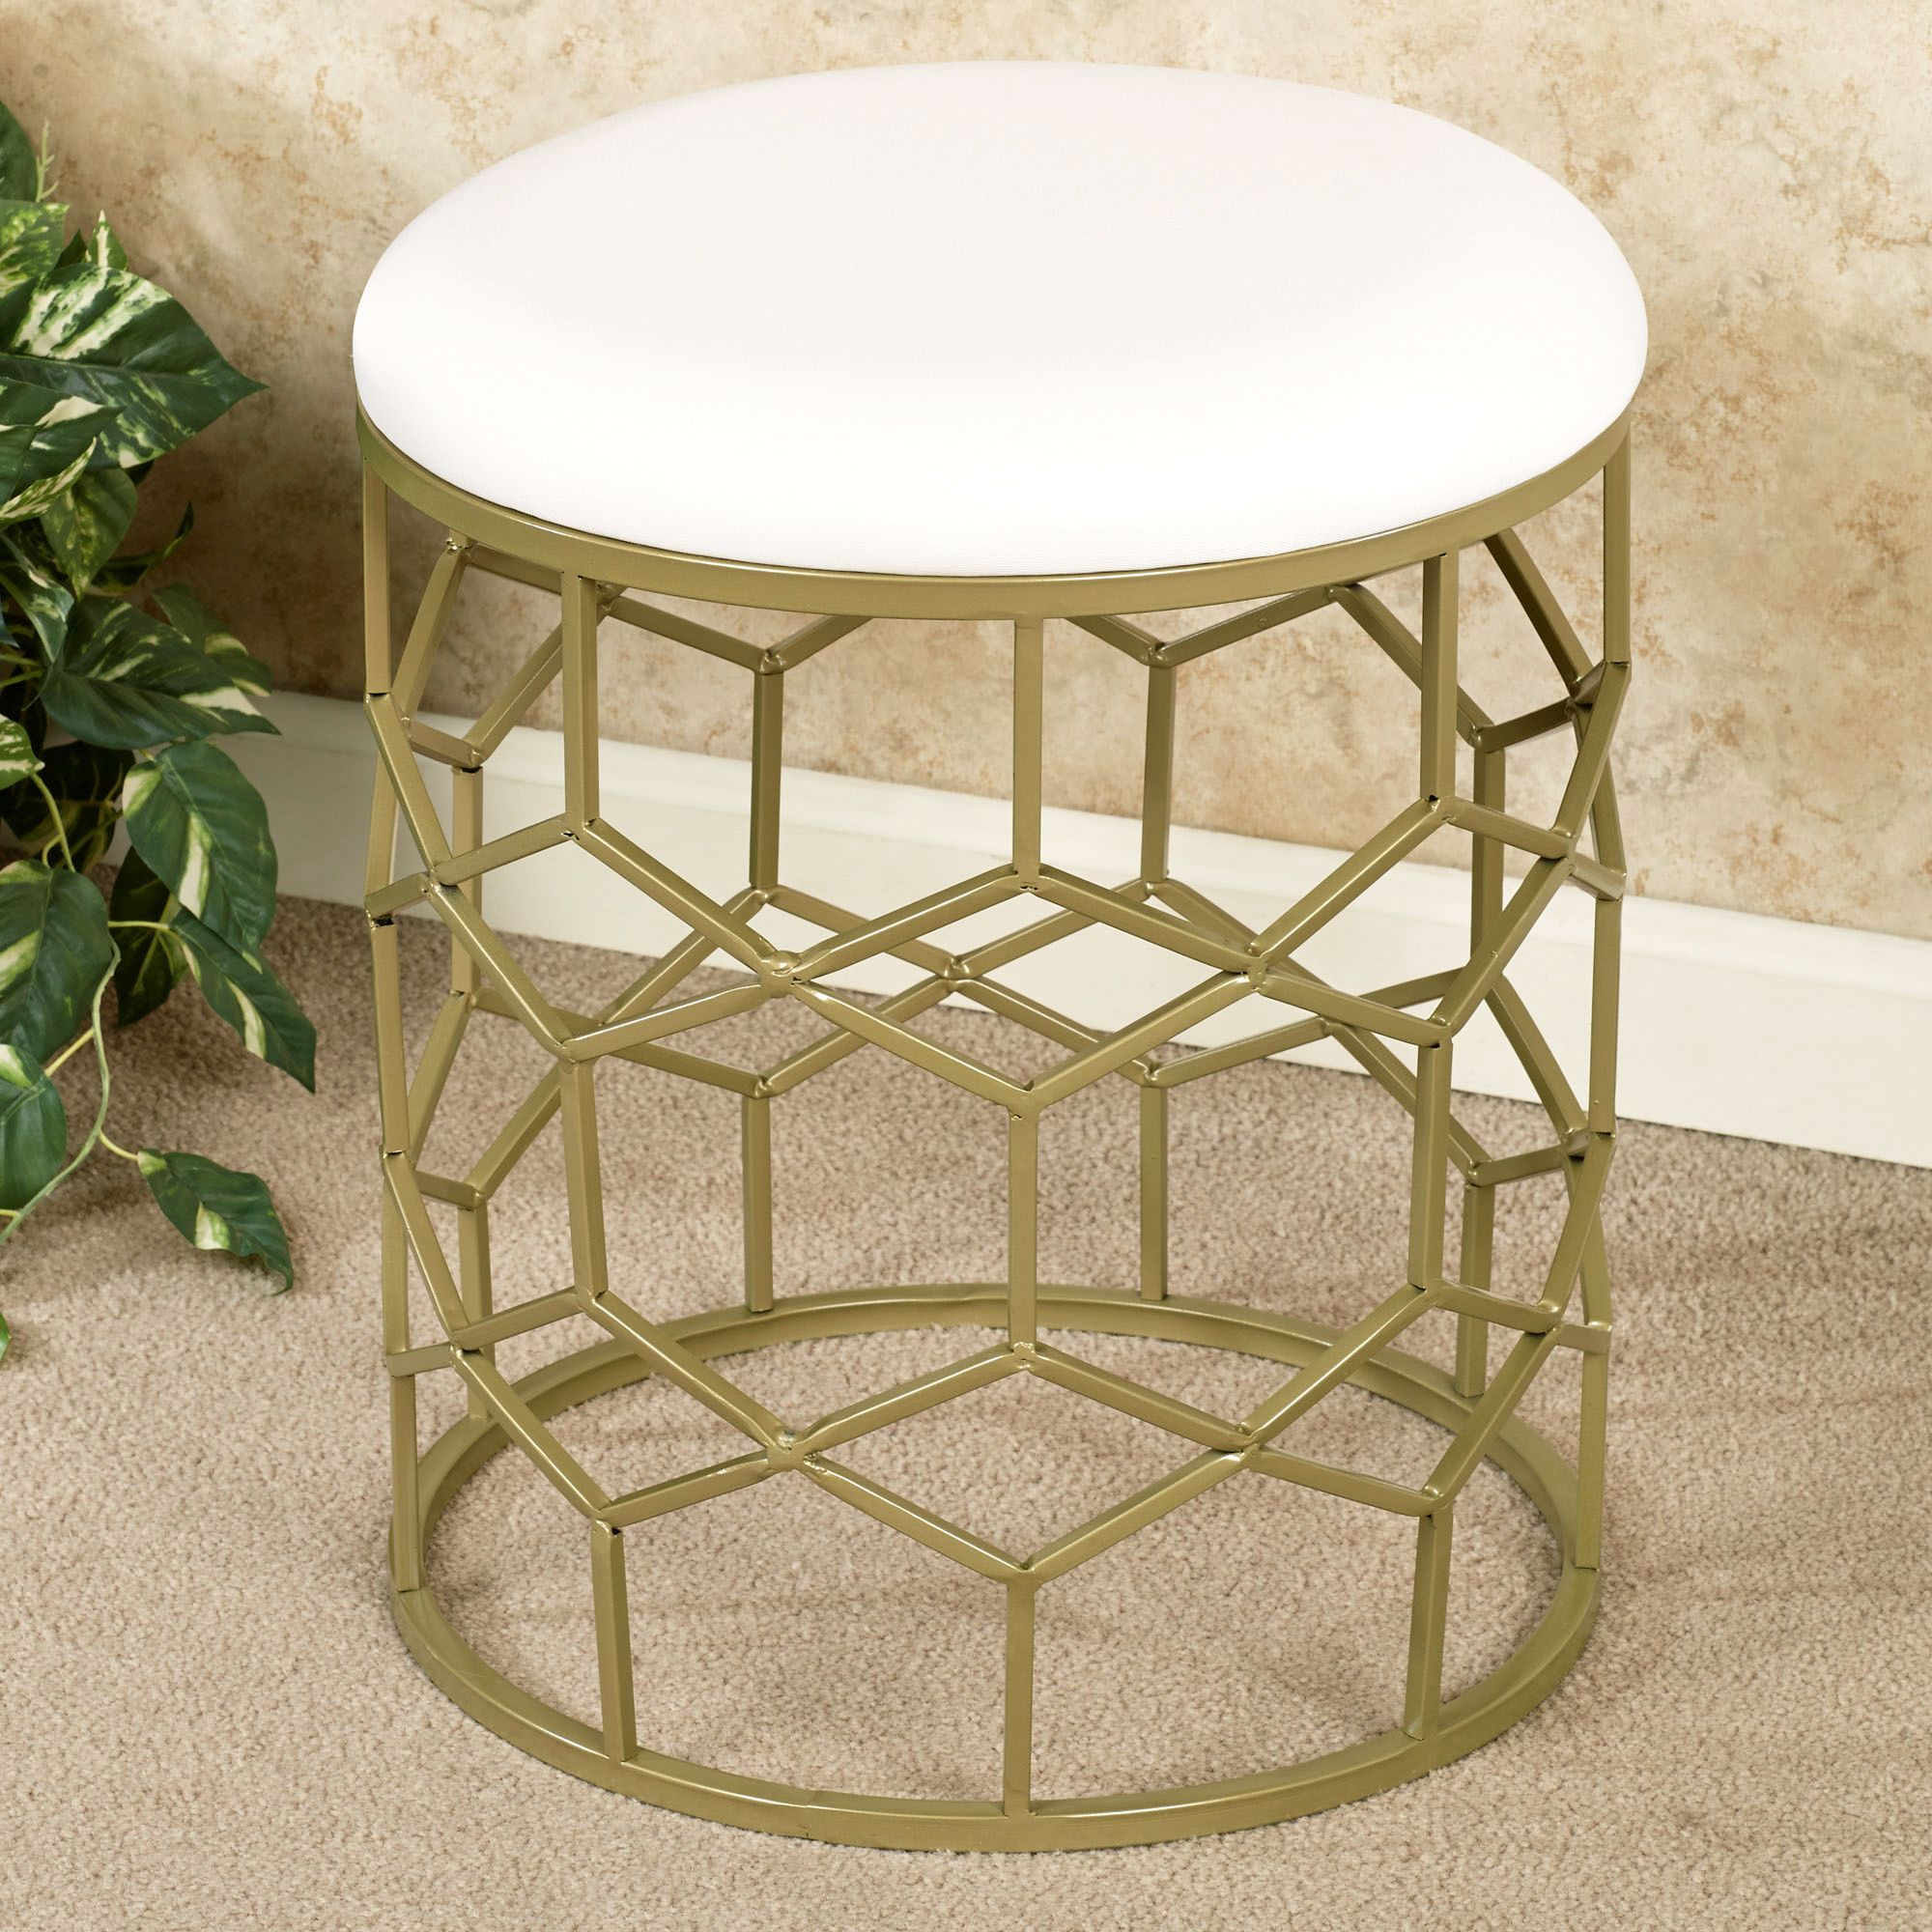 cheap cane barstool boat use bar furniture stool chairs category vanity product chaises australia rockers stools